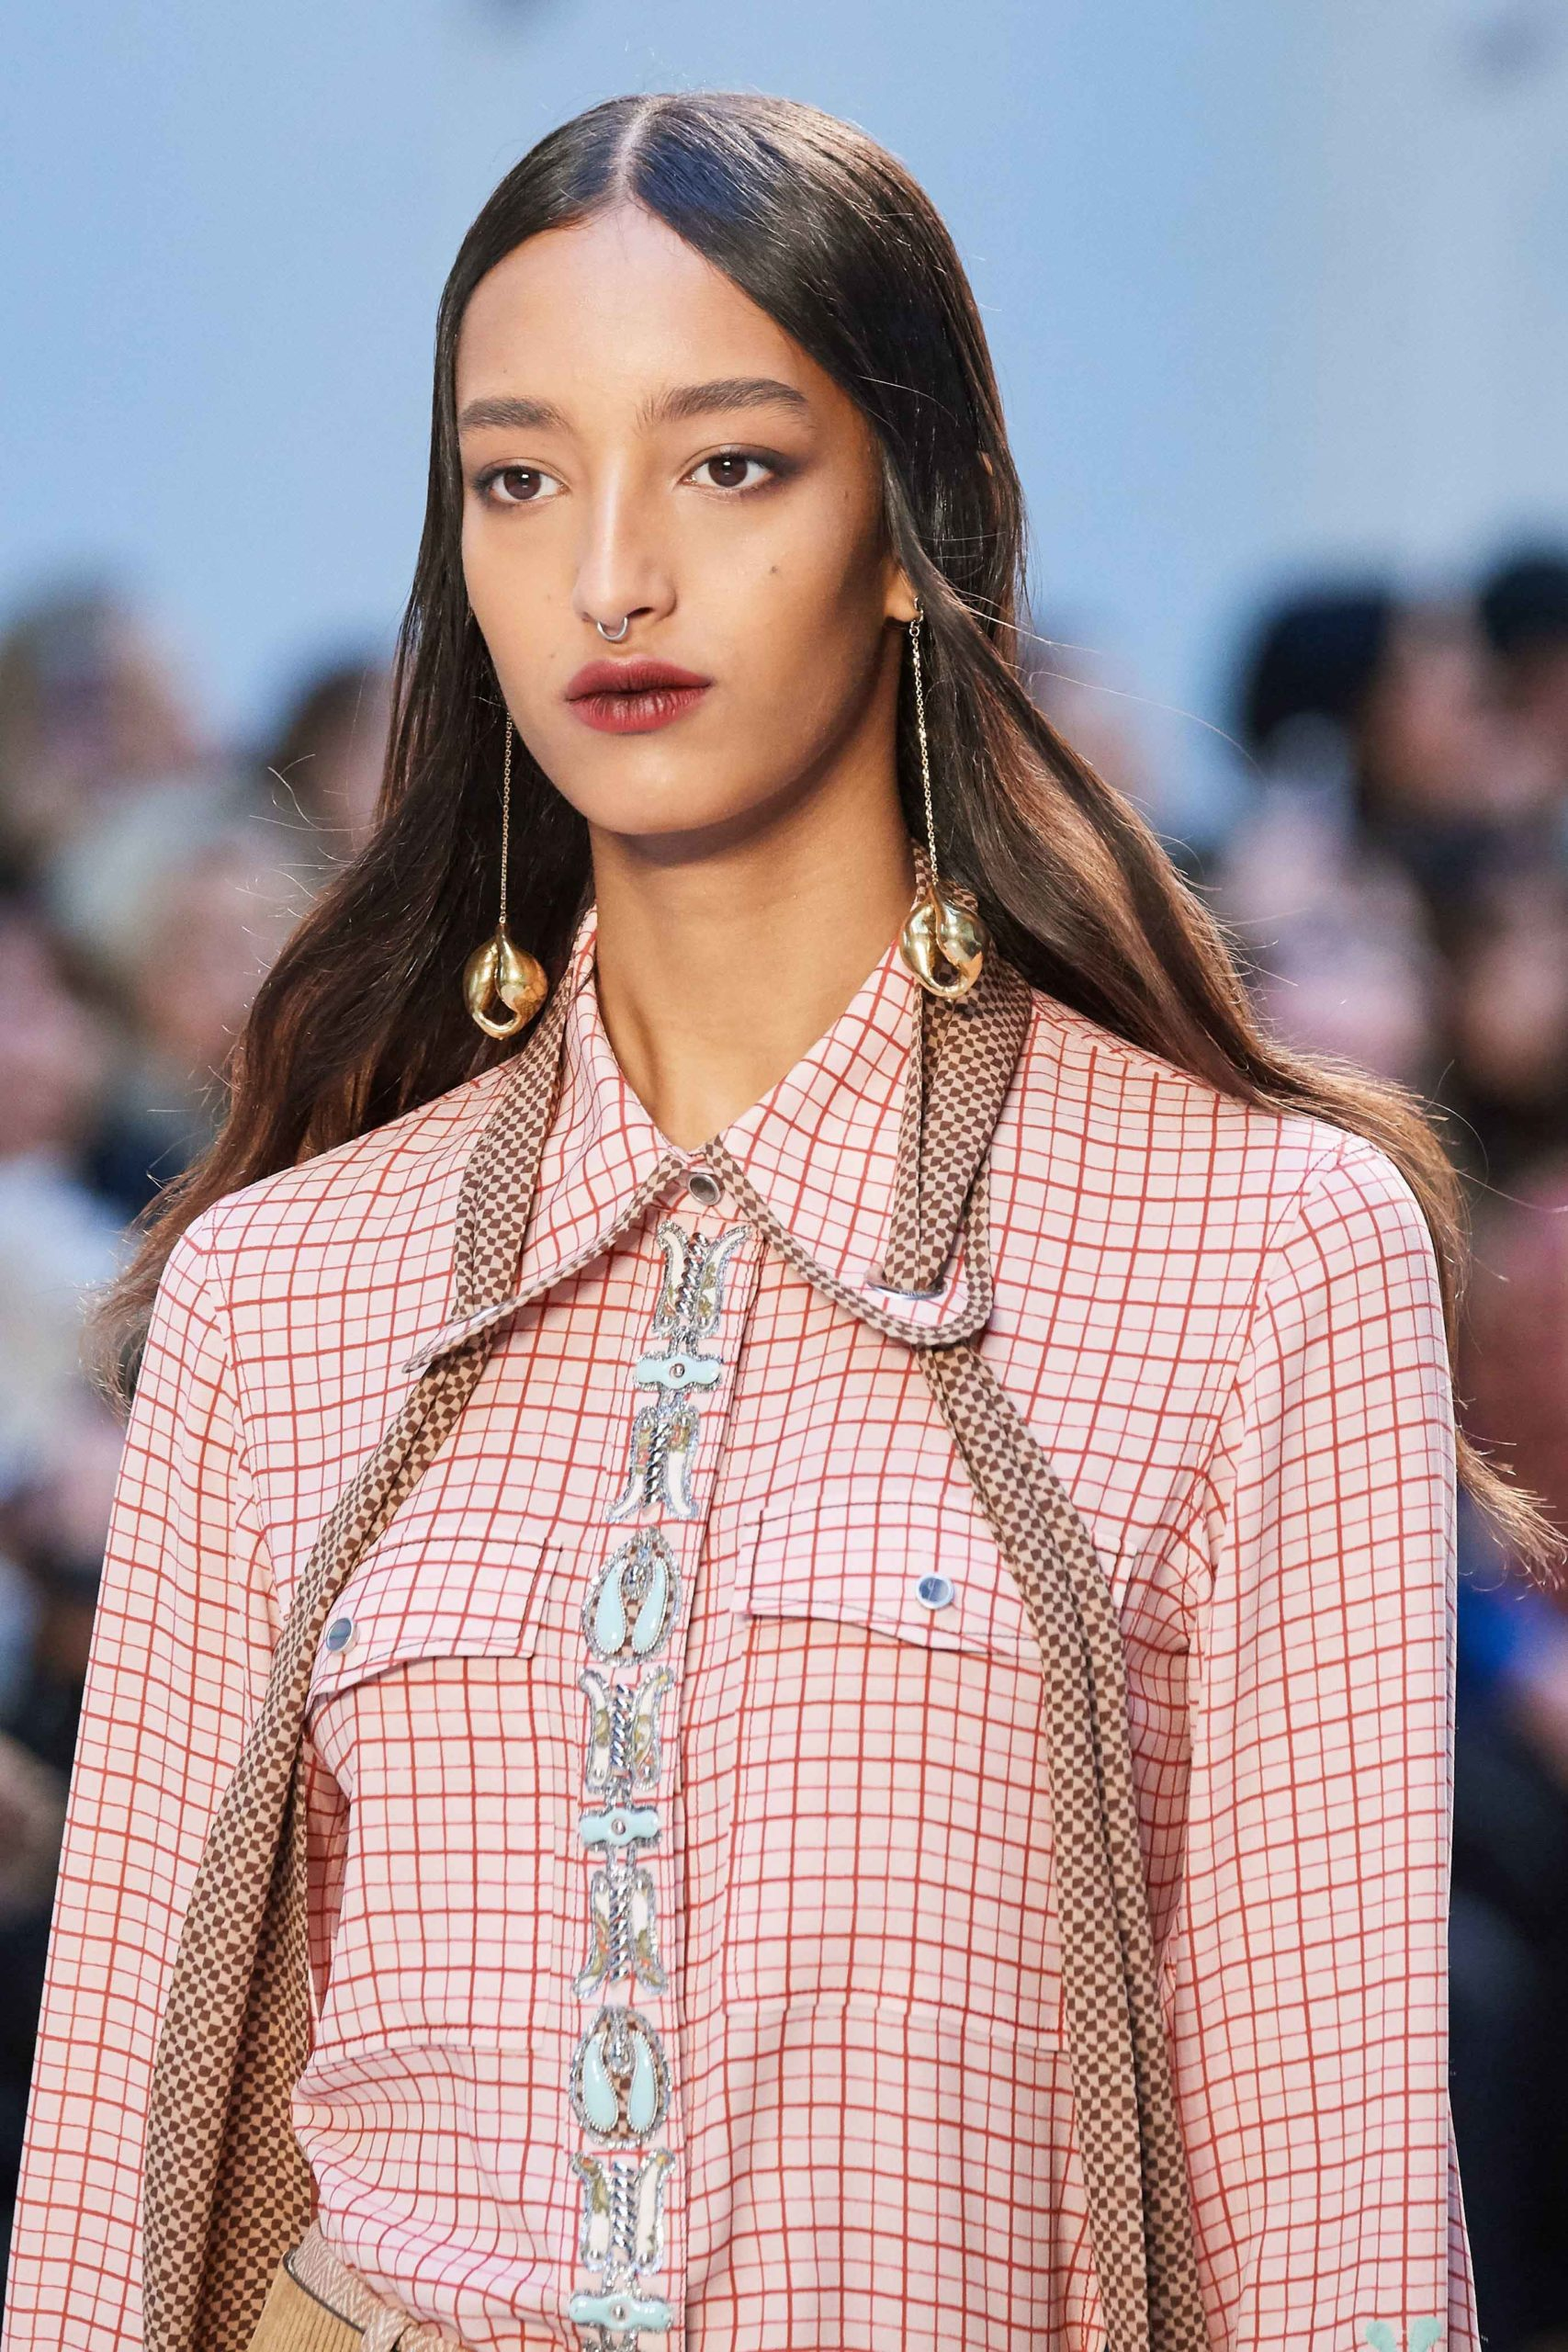 Chloe Fall Winter 2020 trends runway coverage Ready To Wear Vogue details 2